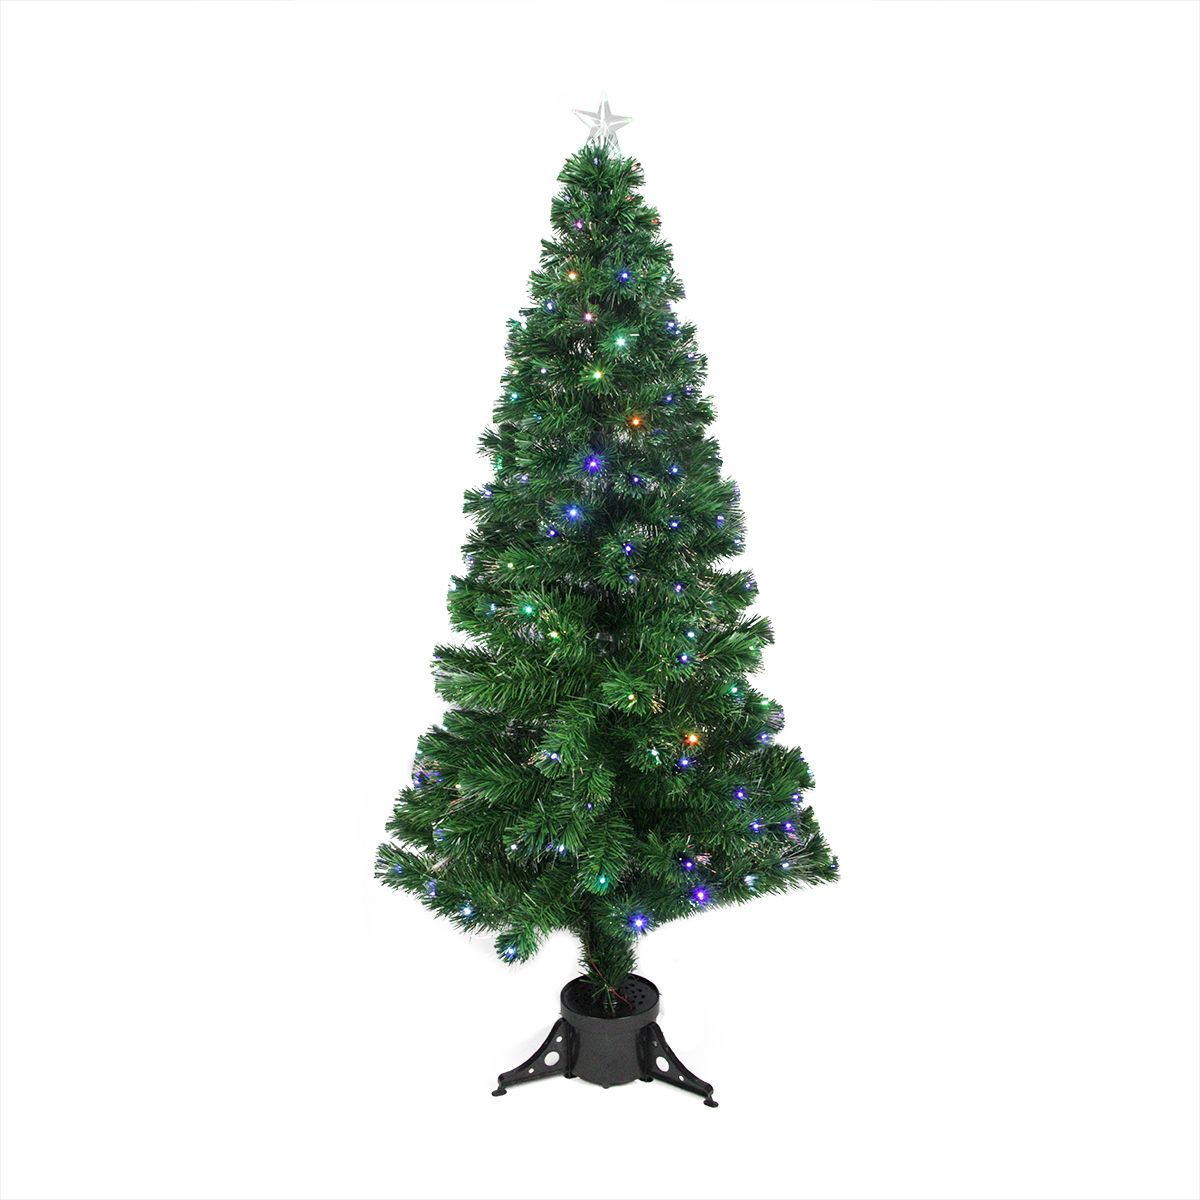 6 Pre Lit Medium Potted Fiber Optic Artificial Christmas Tree With Star Tree Topper Multicolor Led Lights 31466431 Fiber Optic Christmas Tree Star Tree Topper Slim Artificial Christmas Trees